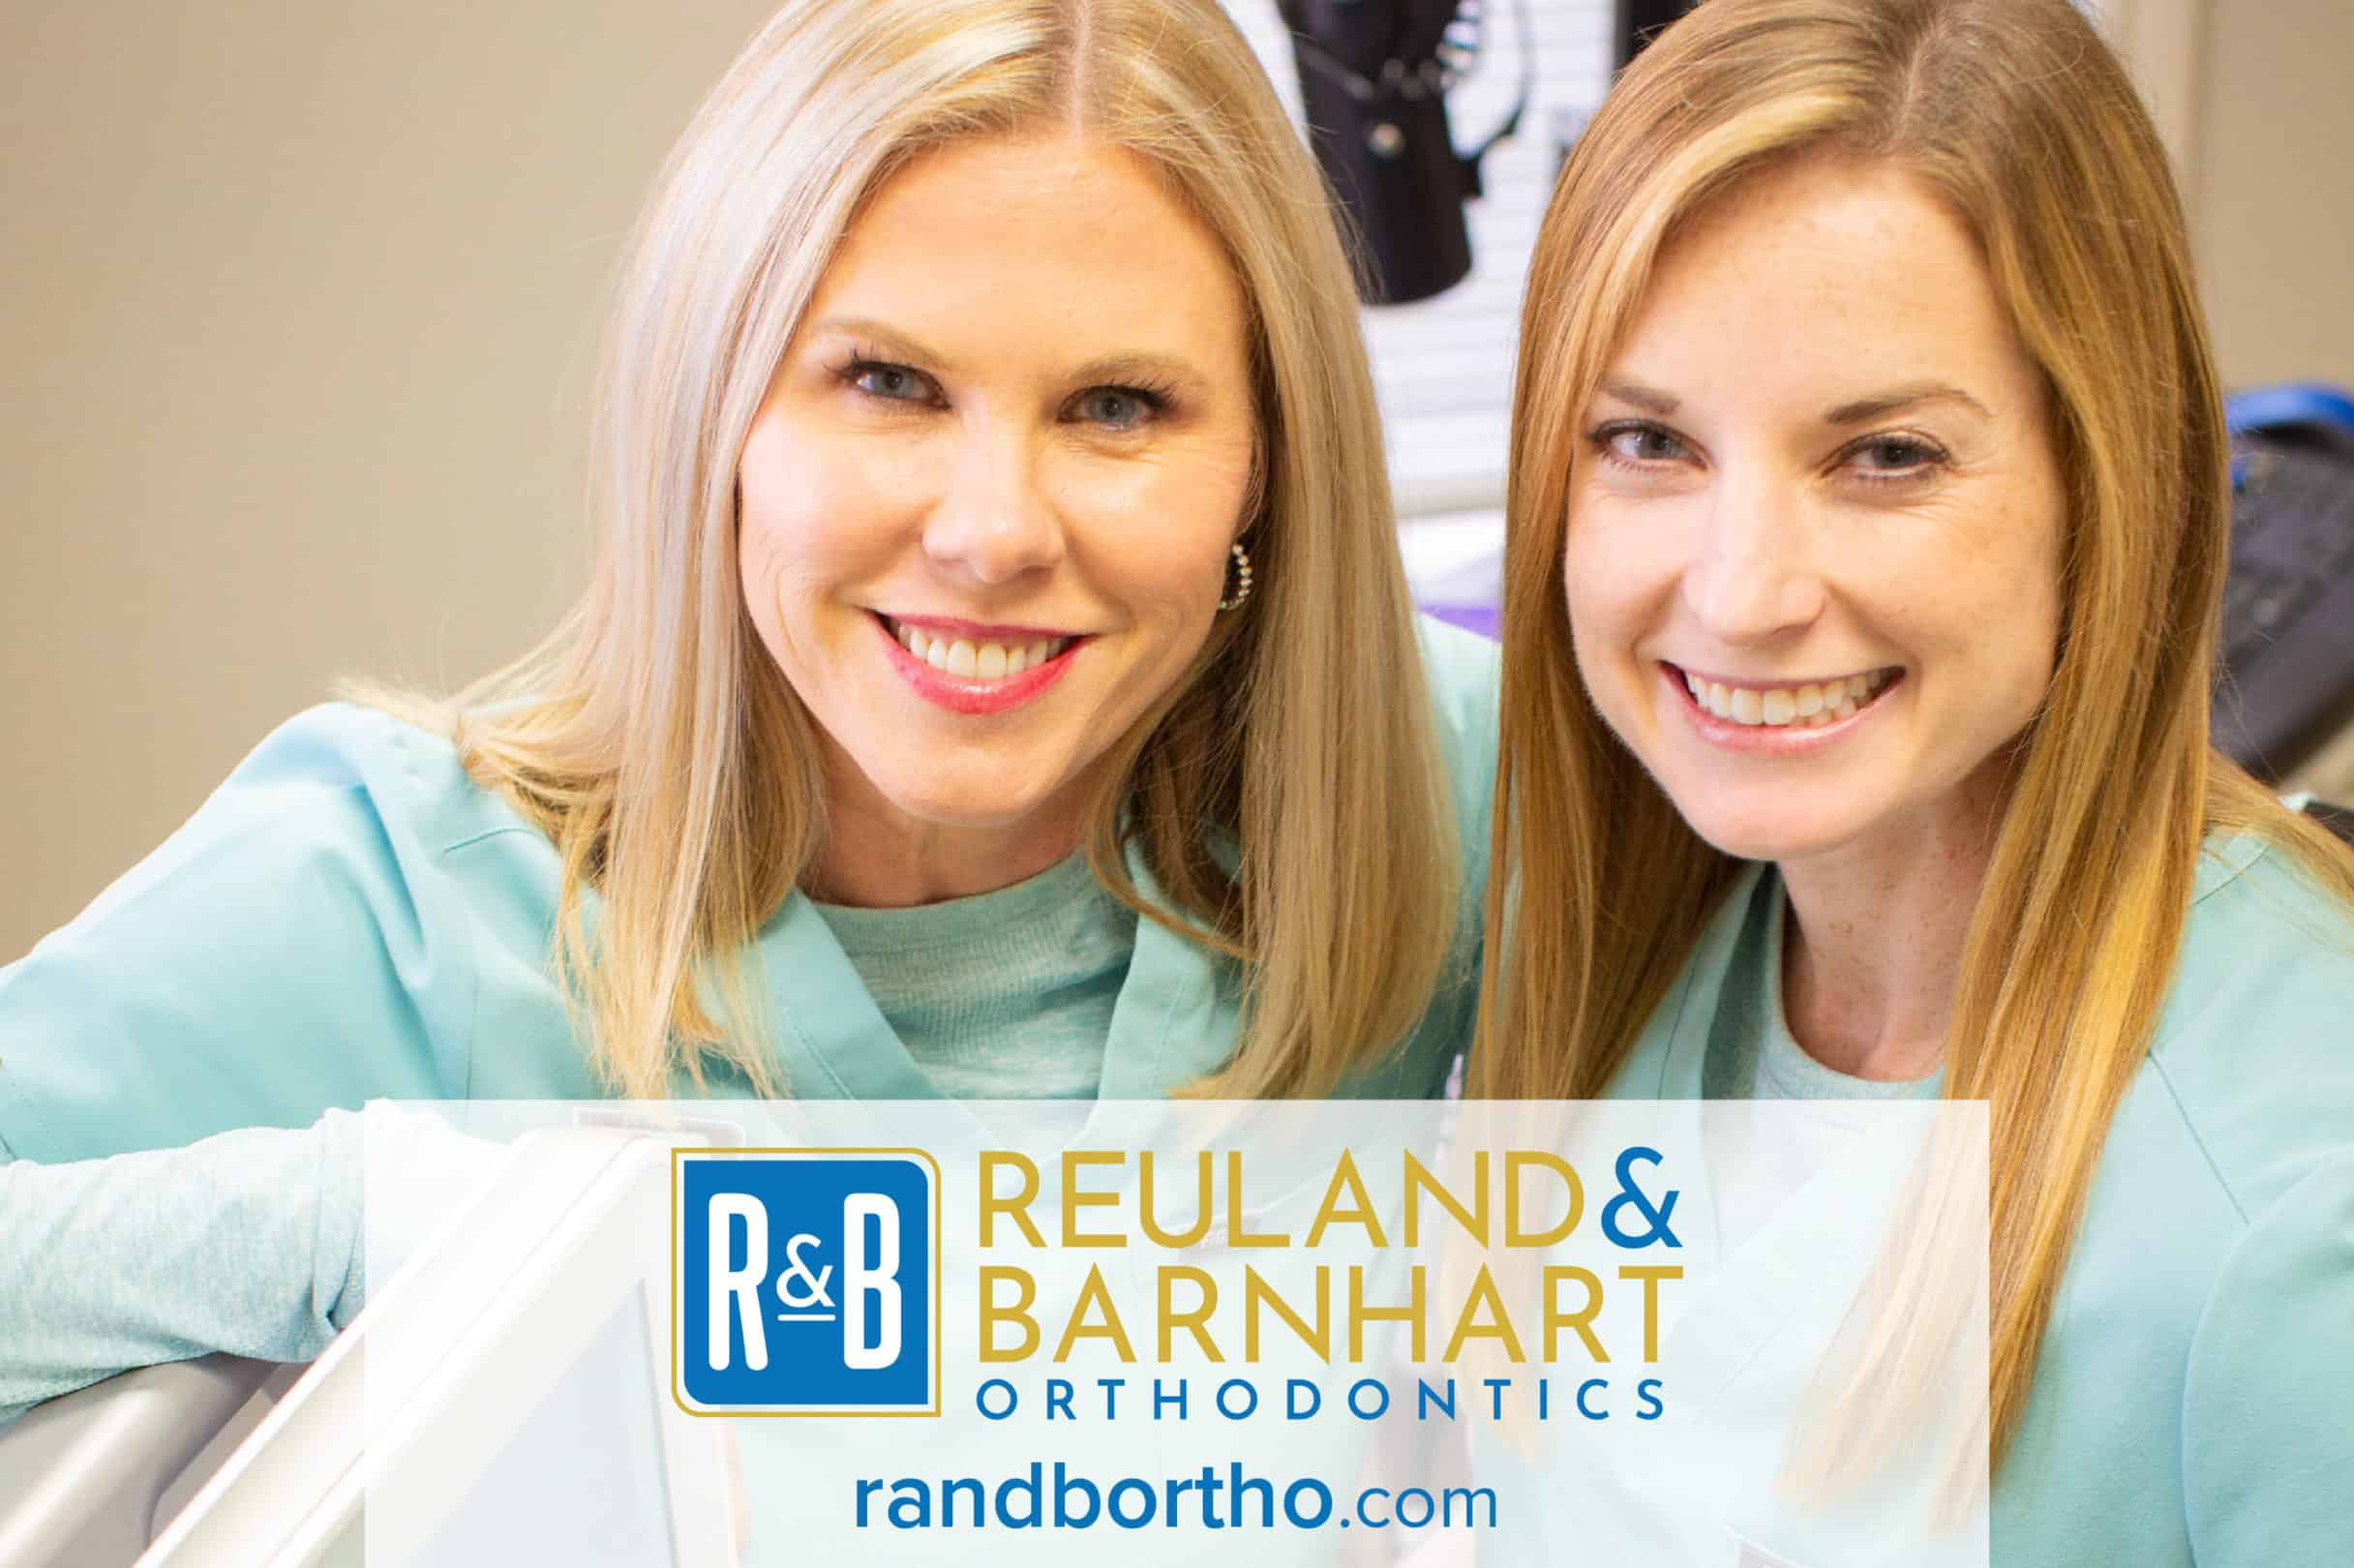 We Are Officially Reuland & Barnhart Orthodontics